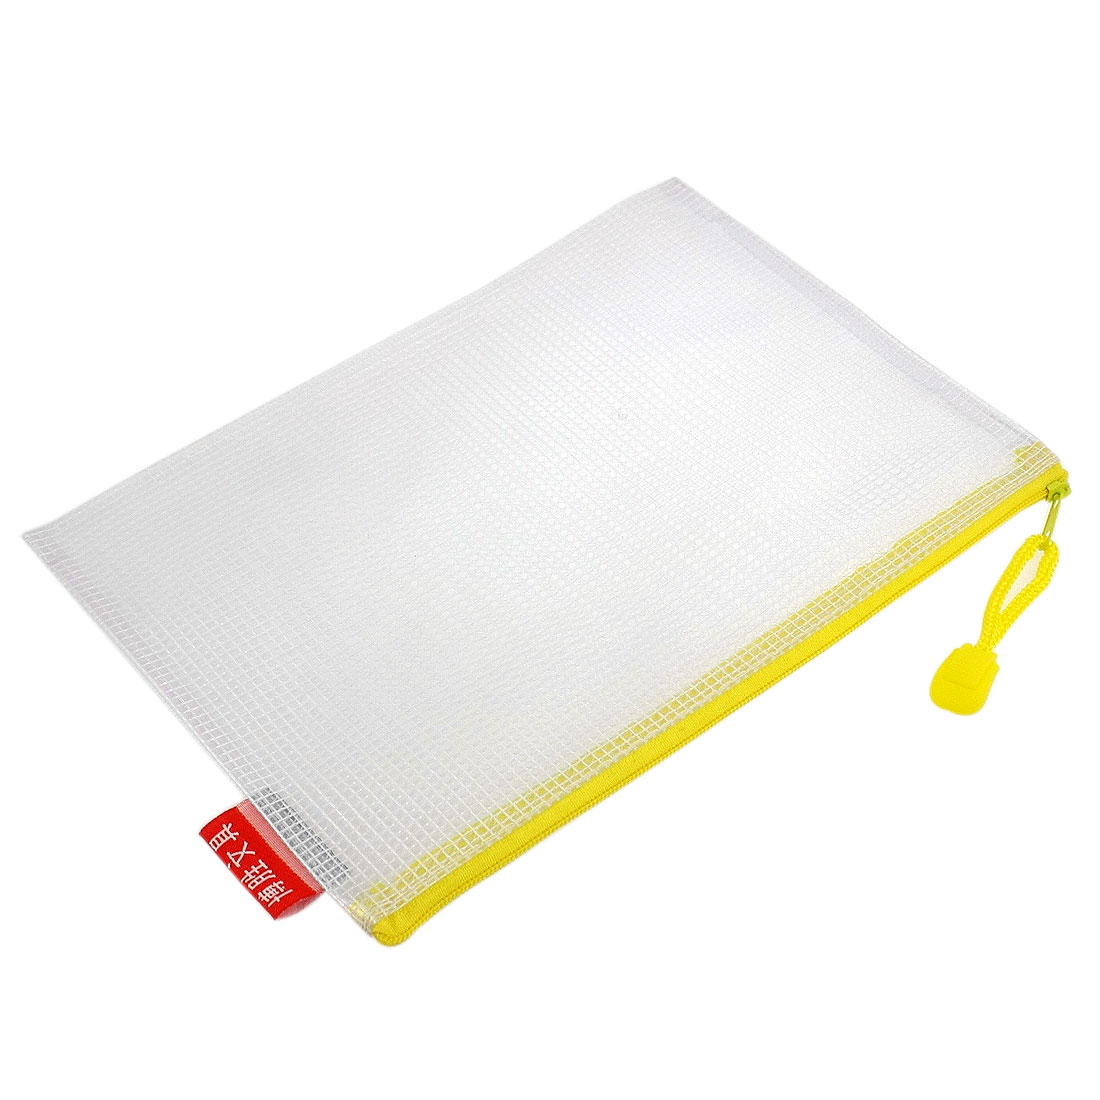 10 Pcs PVC Gridding Fabric Yellow Zipper A5 Paper Files Bag Folders